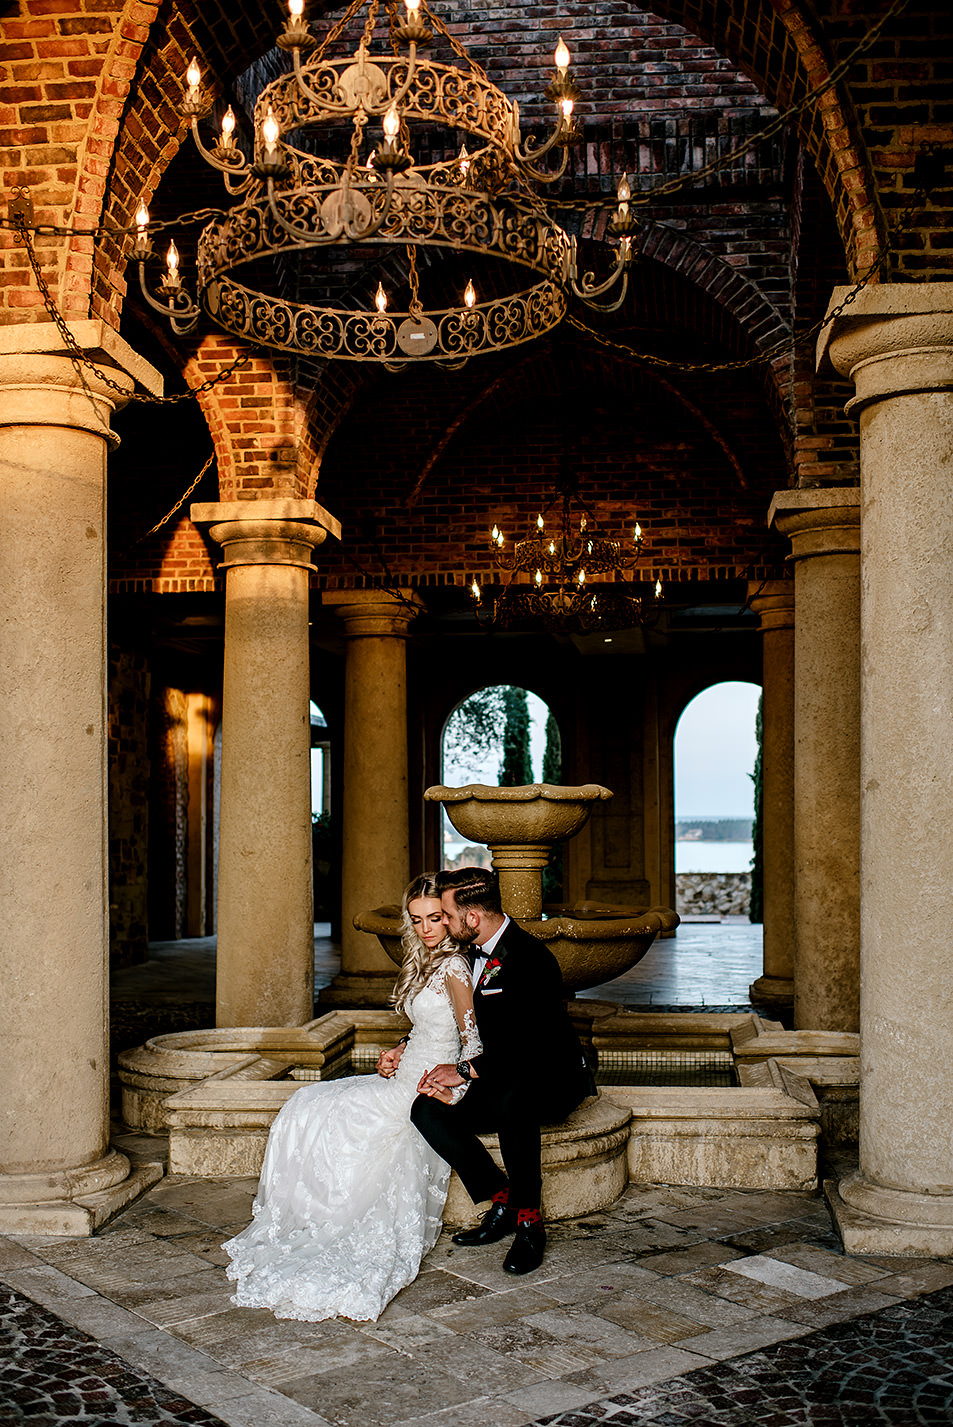 Portrait of bride and groom sitting by a water fountain at Bella Collina Florida, during sunset.